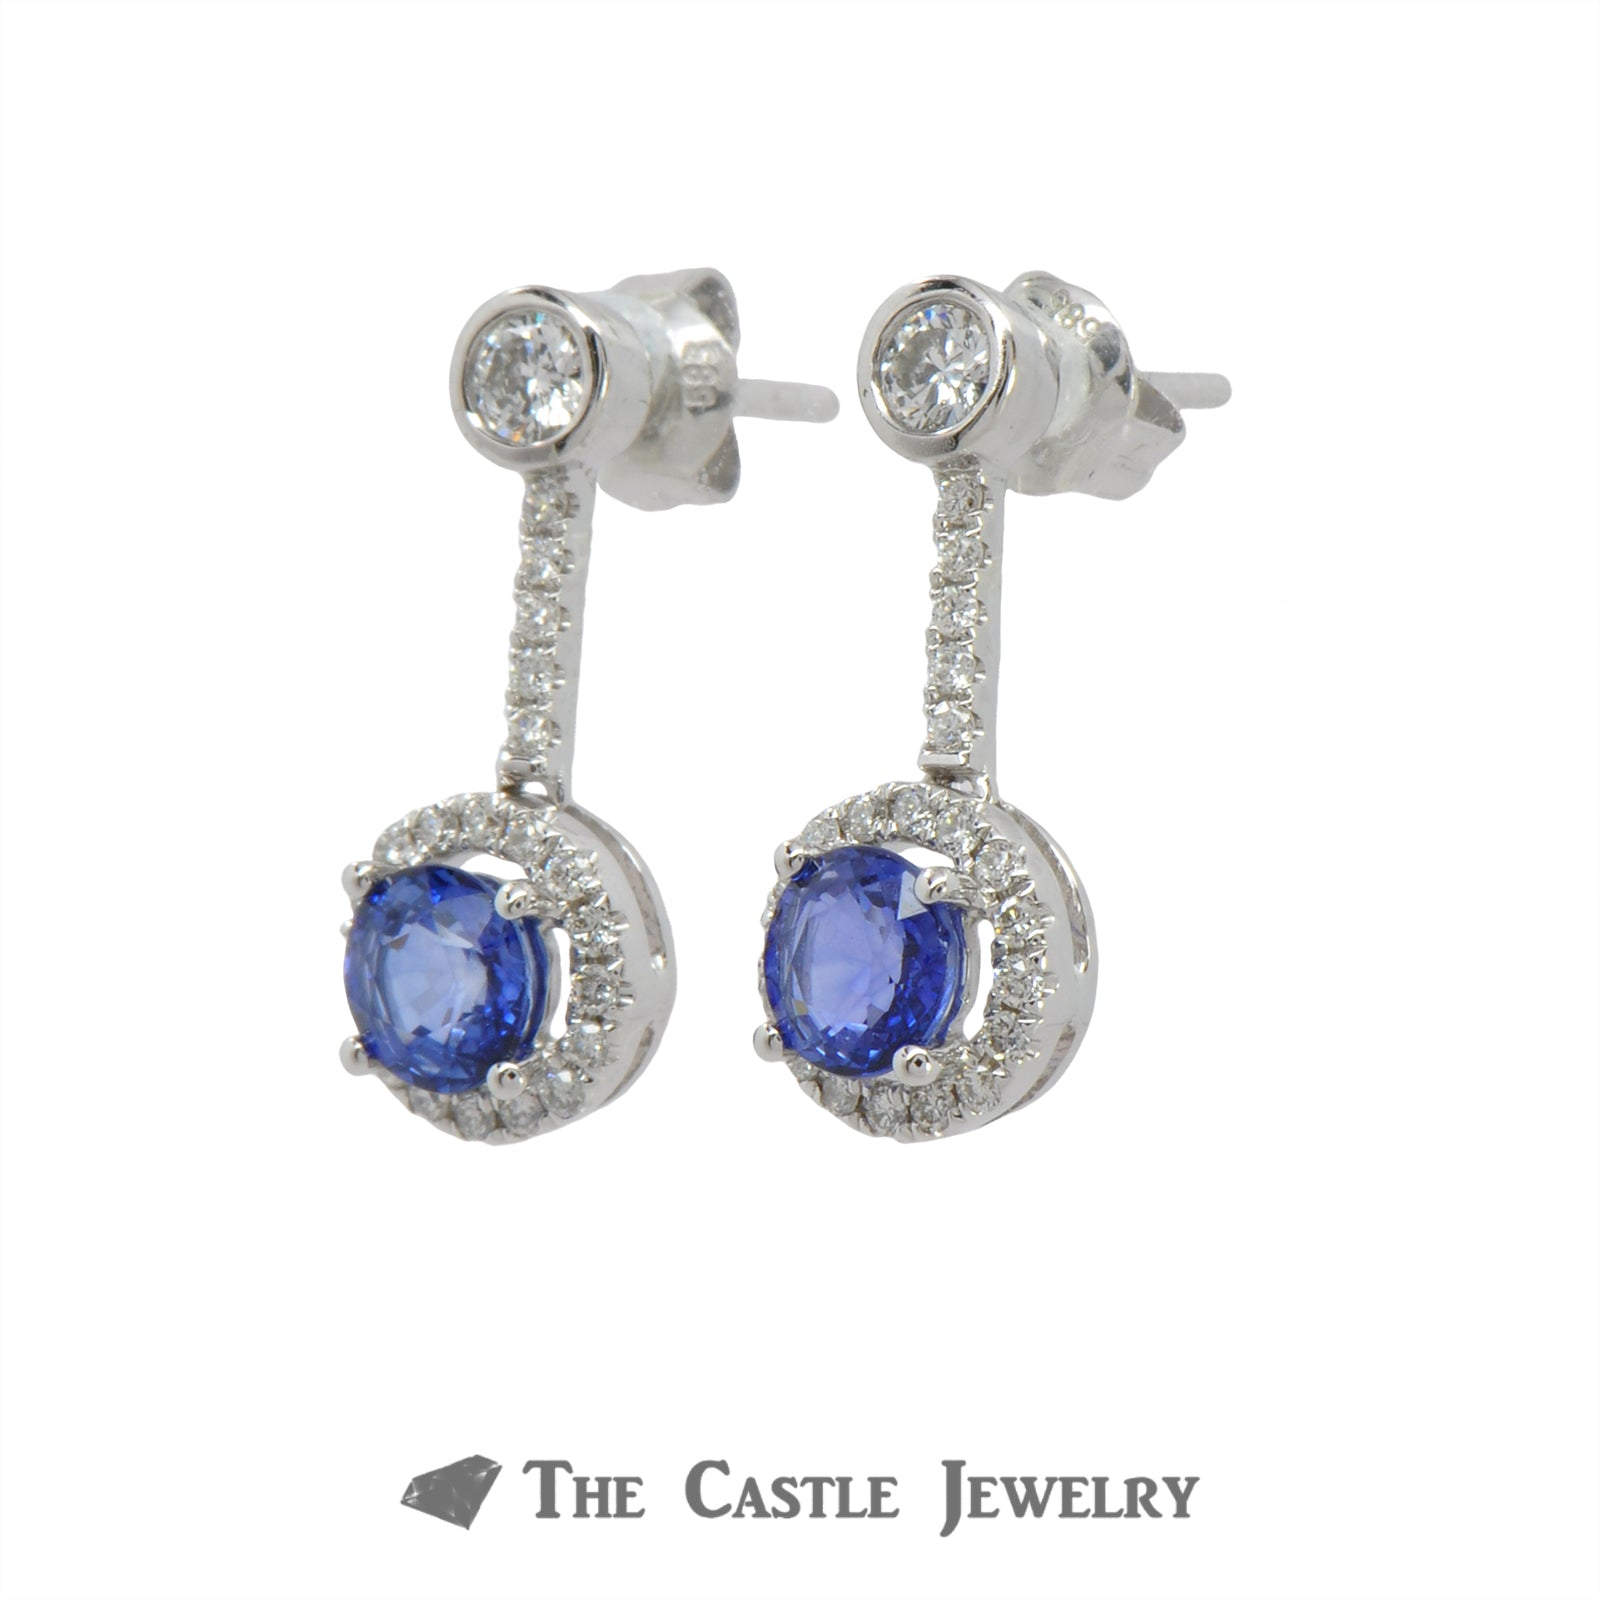 1.28cttw Round Sapphire Earrings with .50cttw Diamond Halo and Accents in 14k White Gold-1